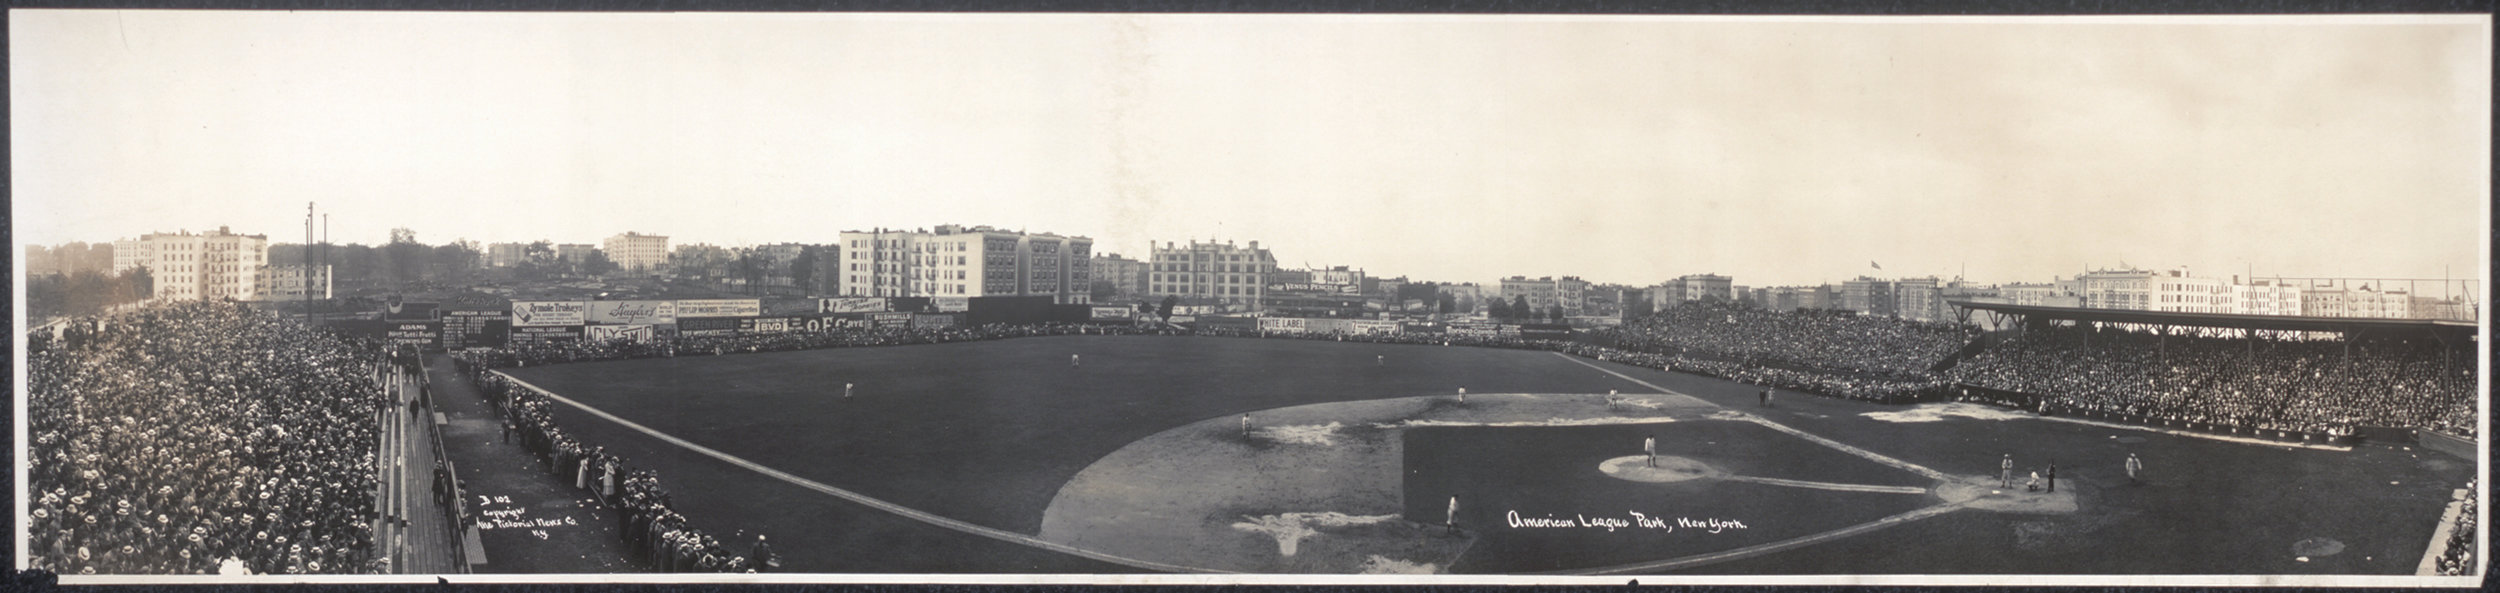 A panorama of Hilltop Park, circa 1910, showing the stadium and surrounding Washington Heights neighborhood.